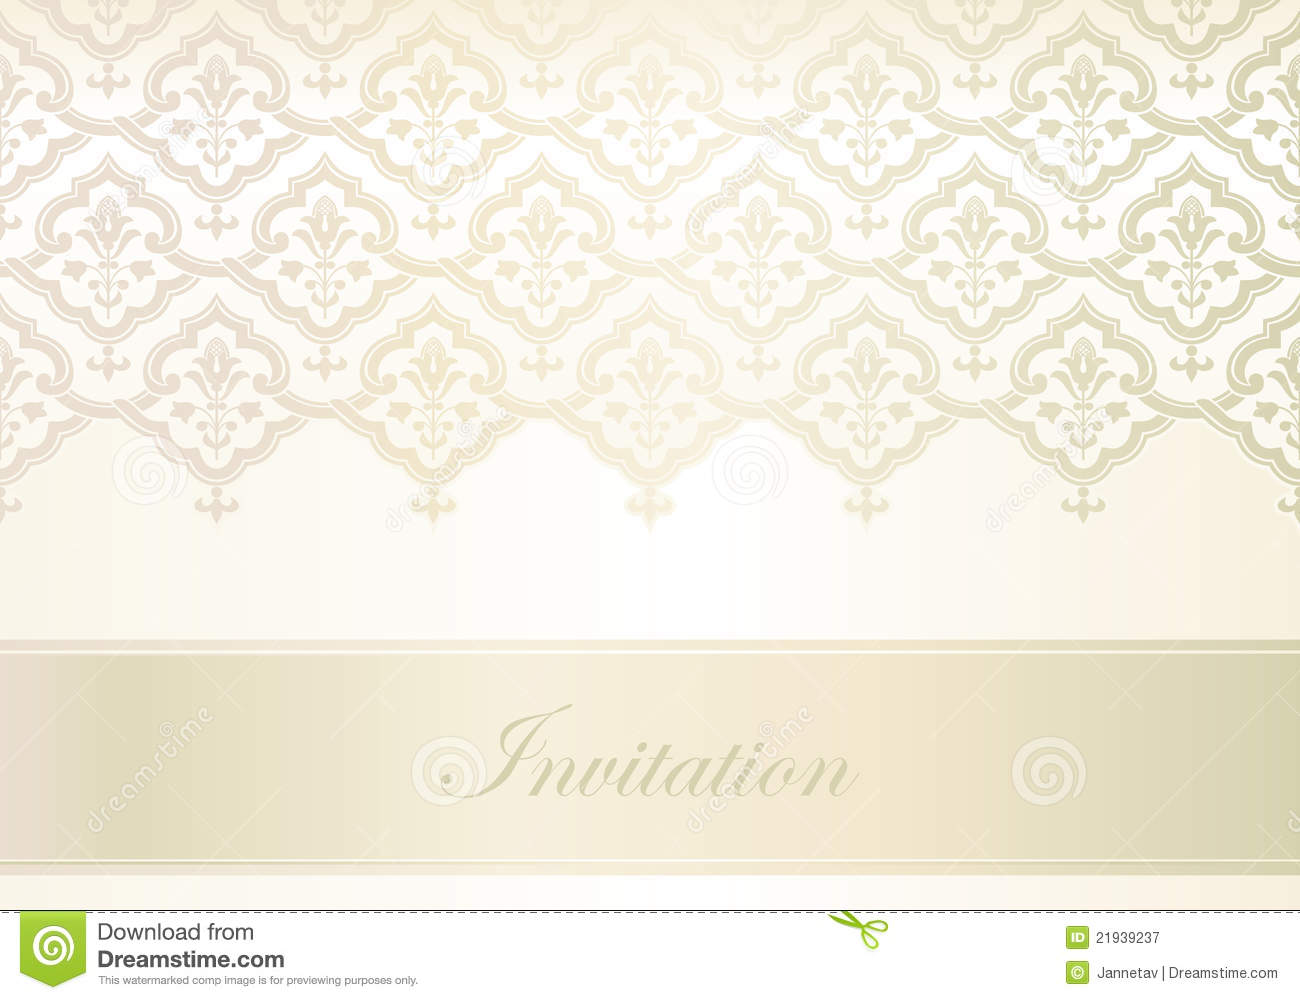 Template For Invitation Card Stock Vector - Illustration of design ...